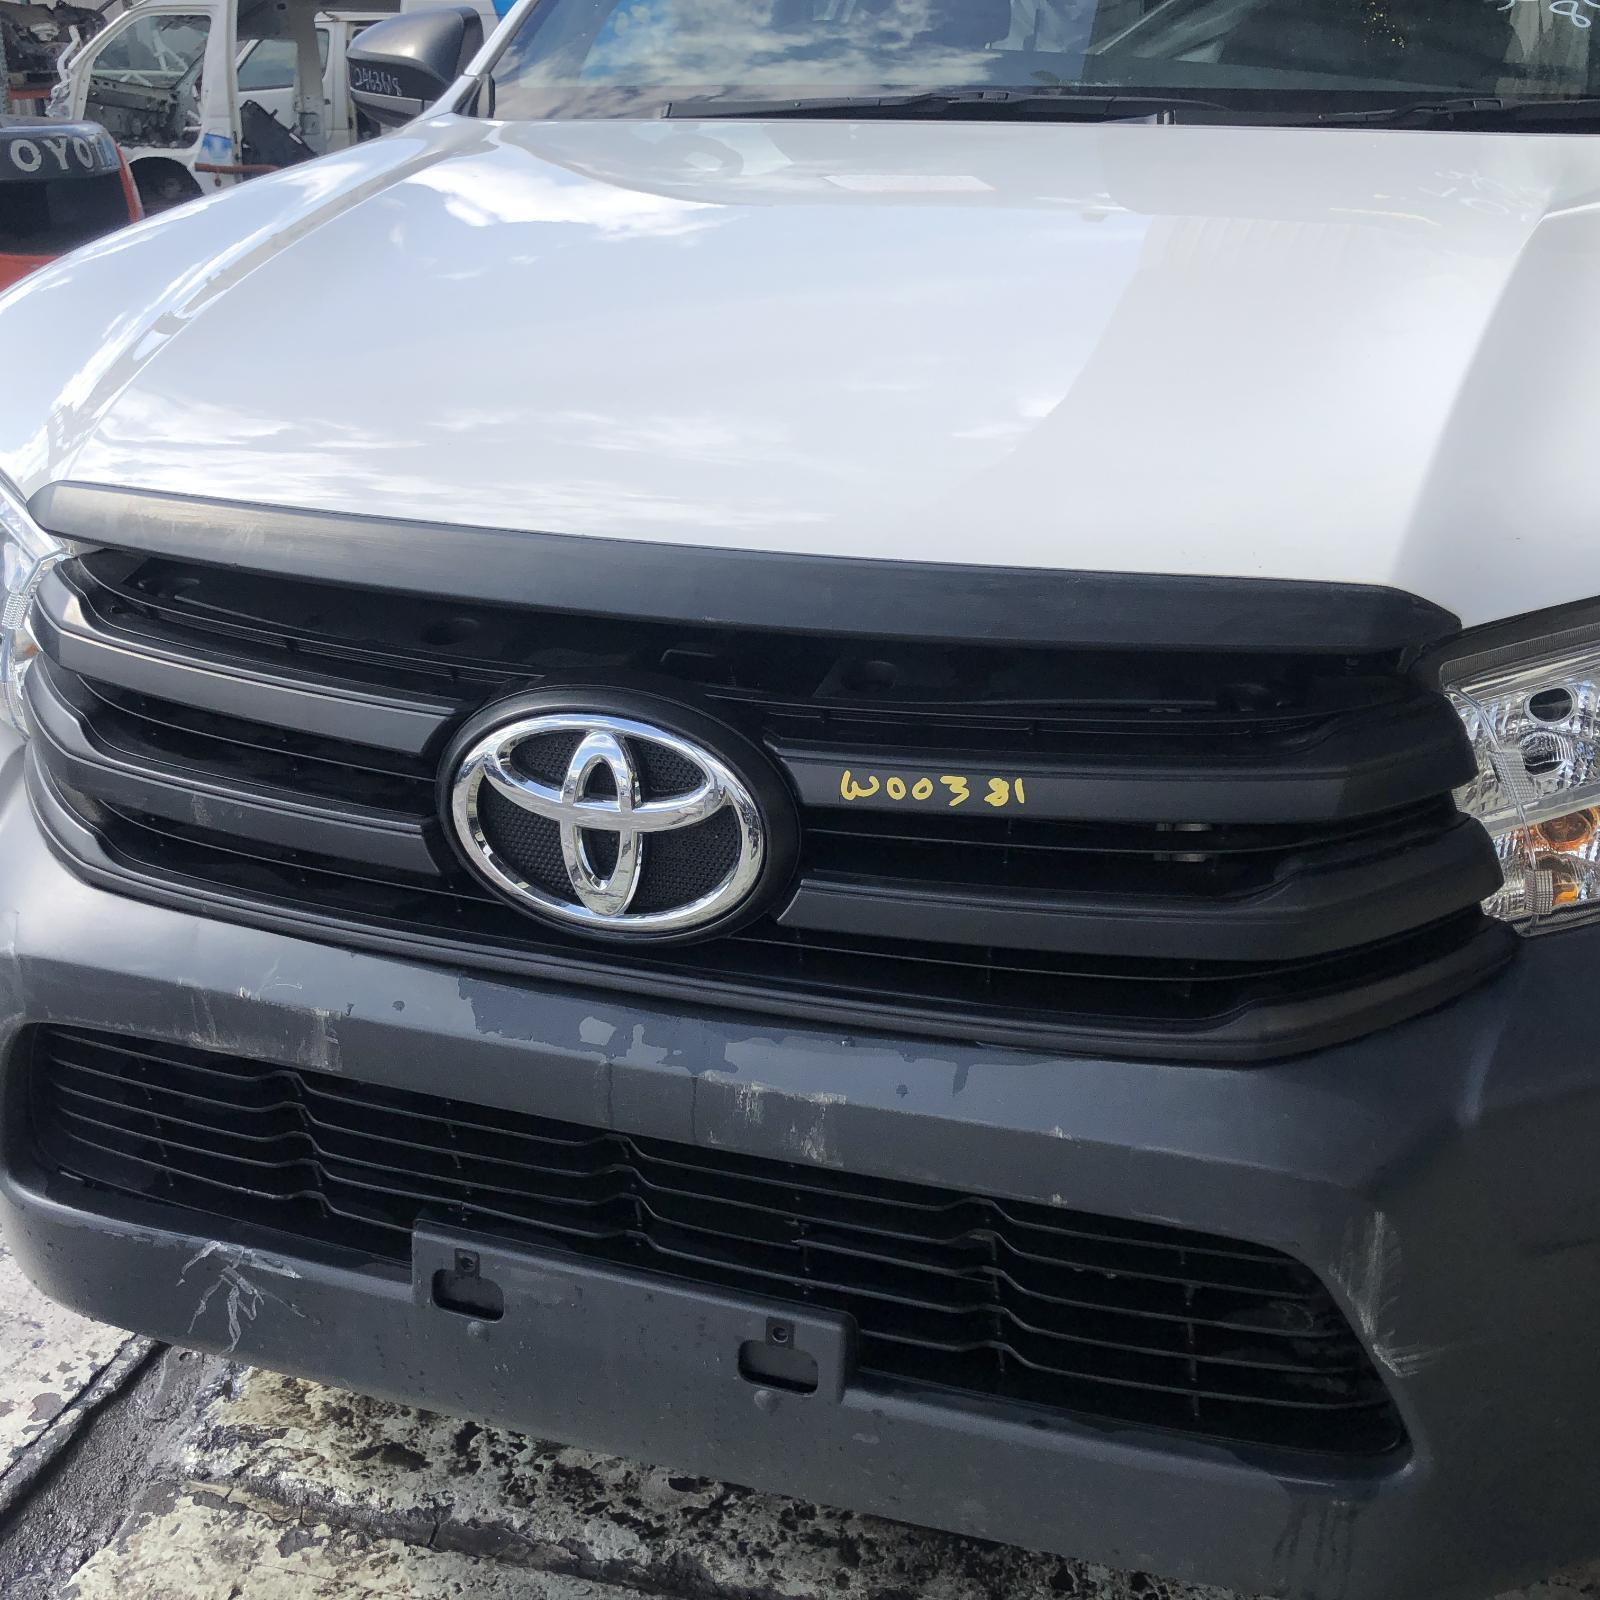 TOYOTA HILUX, Grille, RADIATOR GRILLE, WORKMATE, BLACK, 09/15-